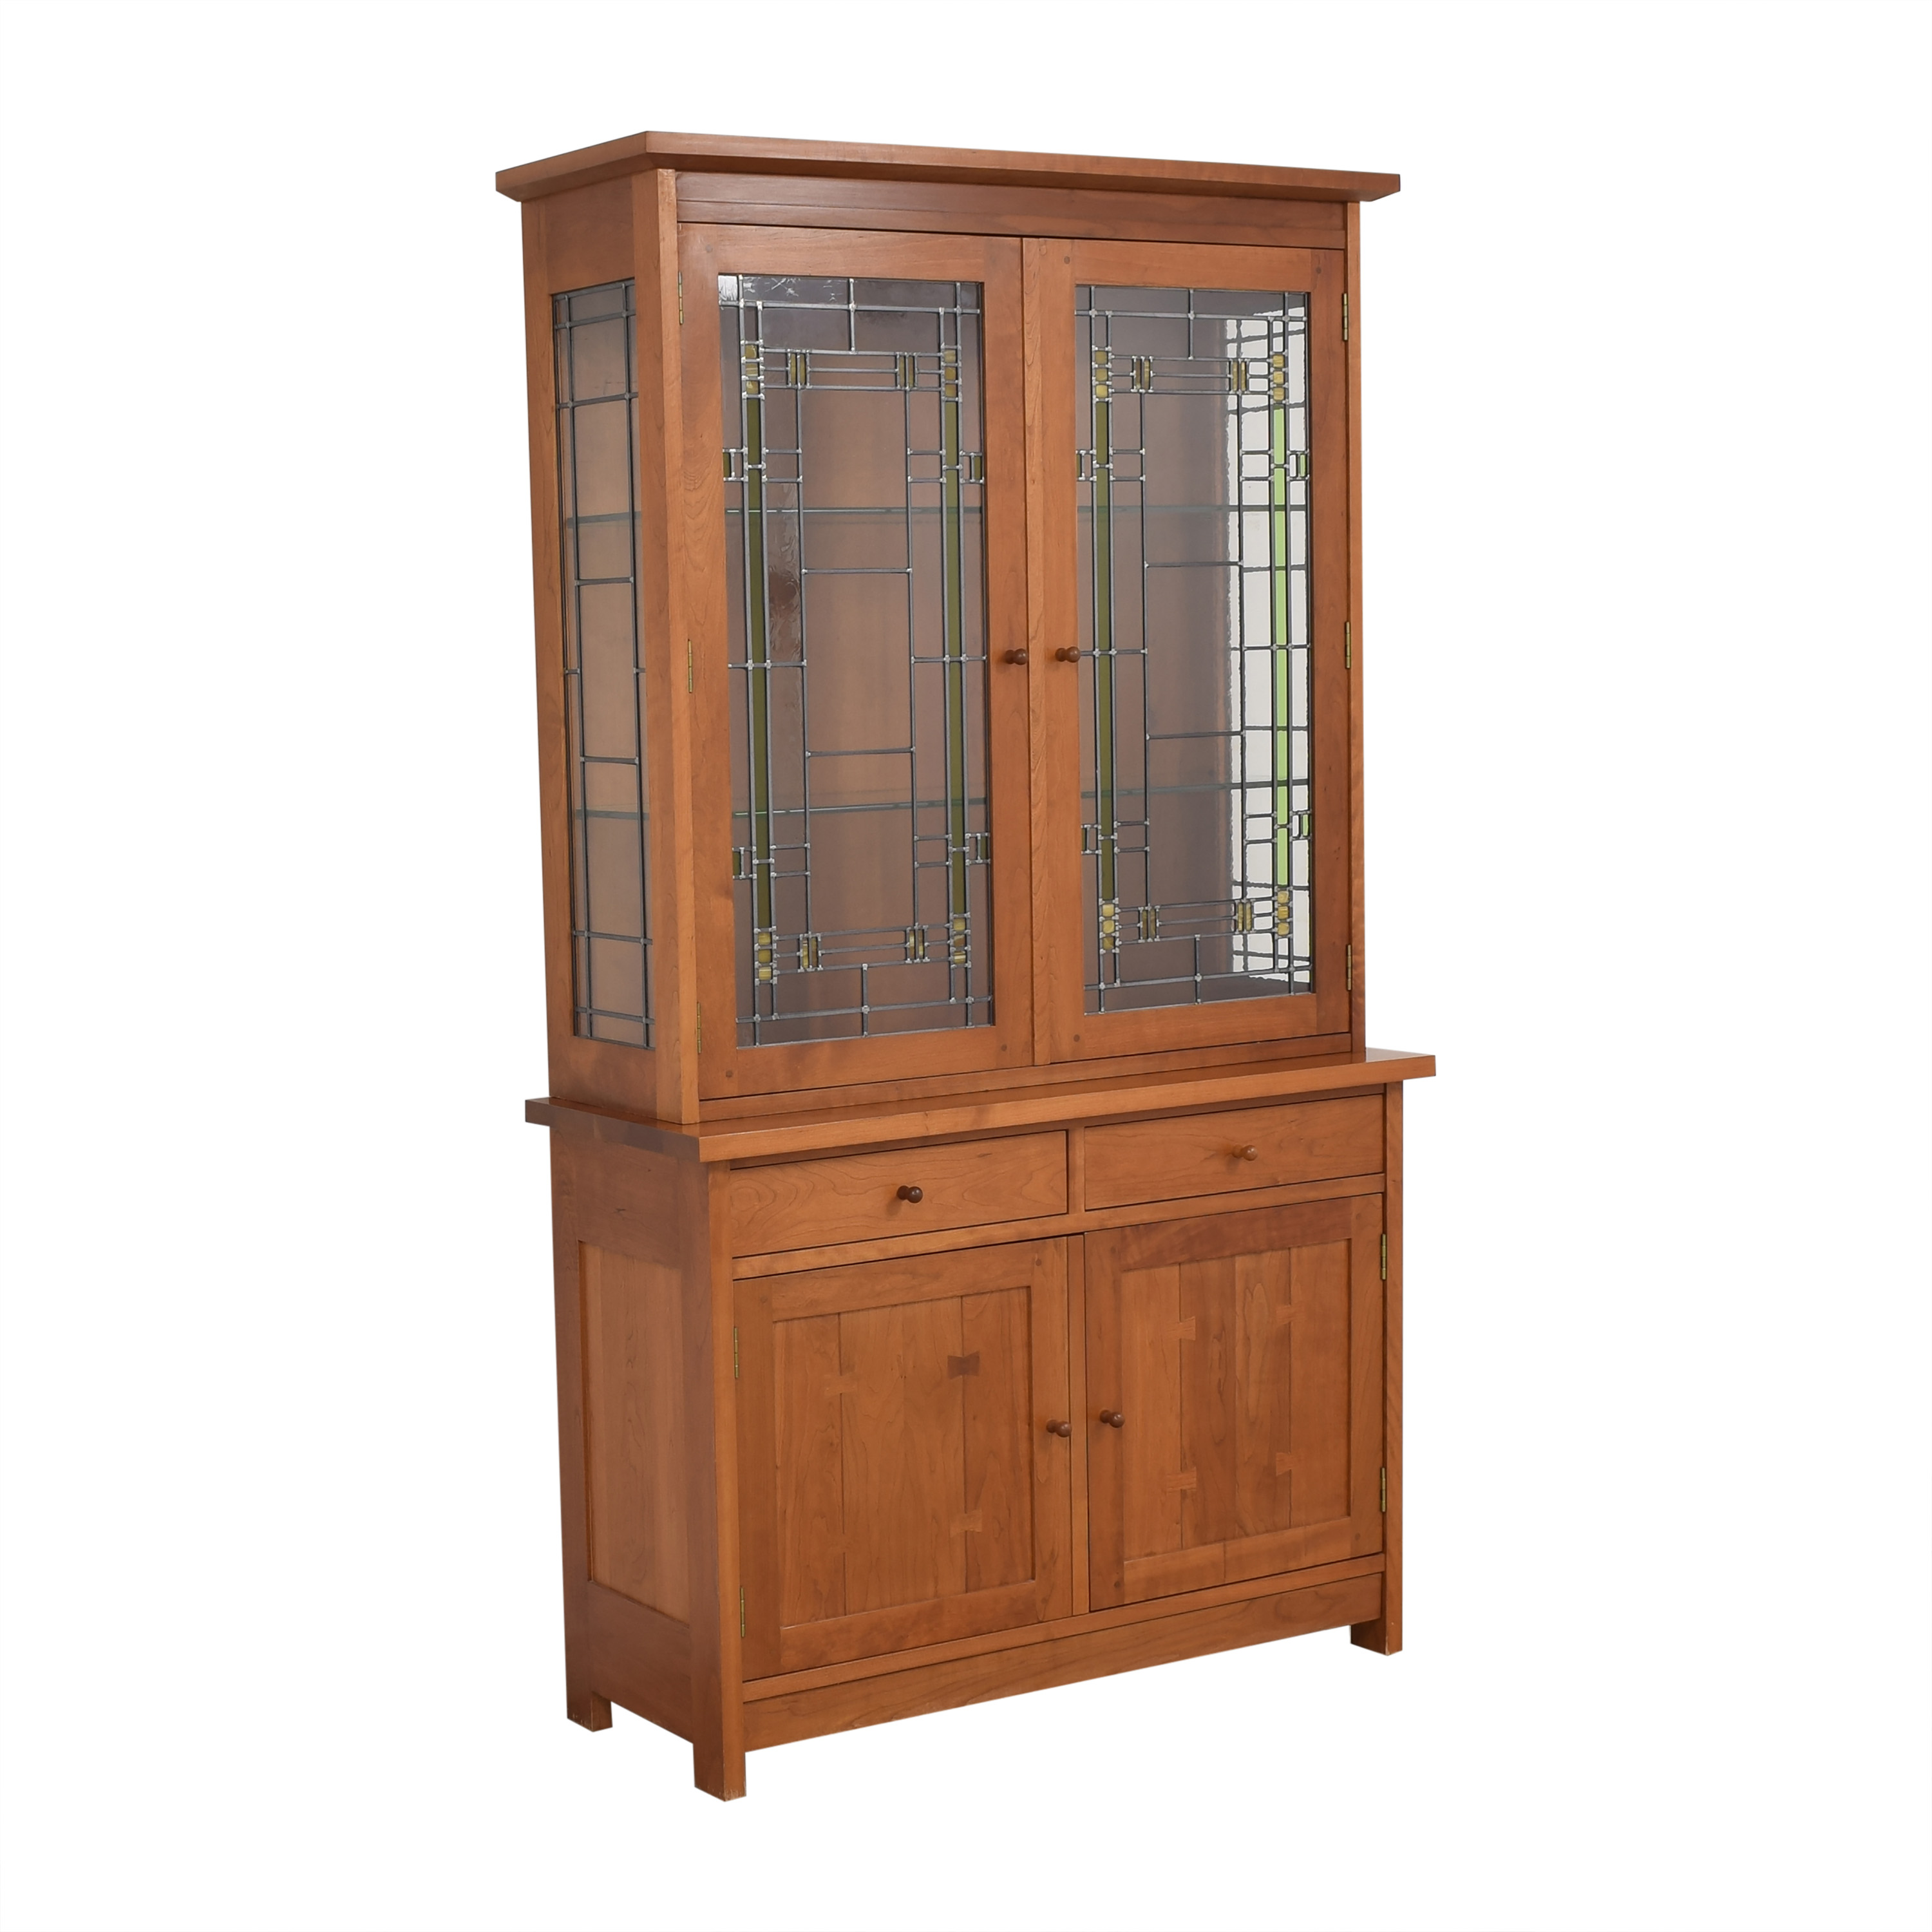 Stickley Furniture Stickley Lighted China Cabinet